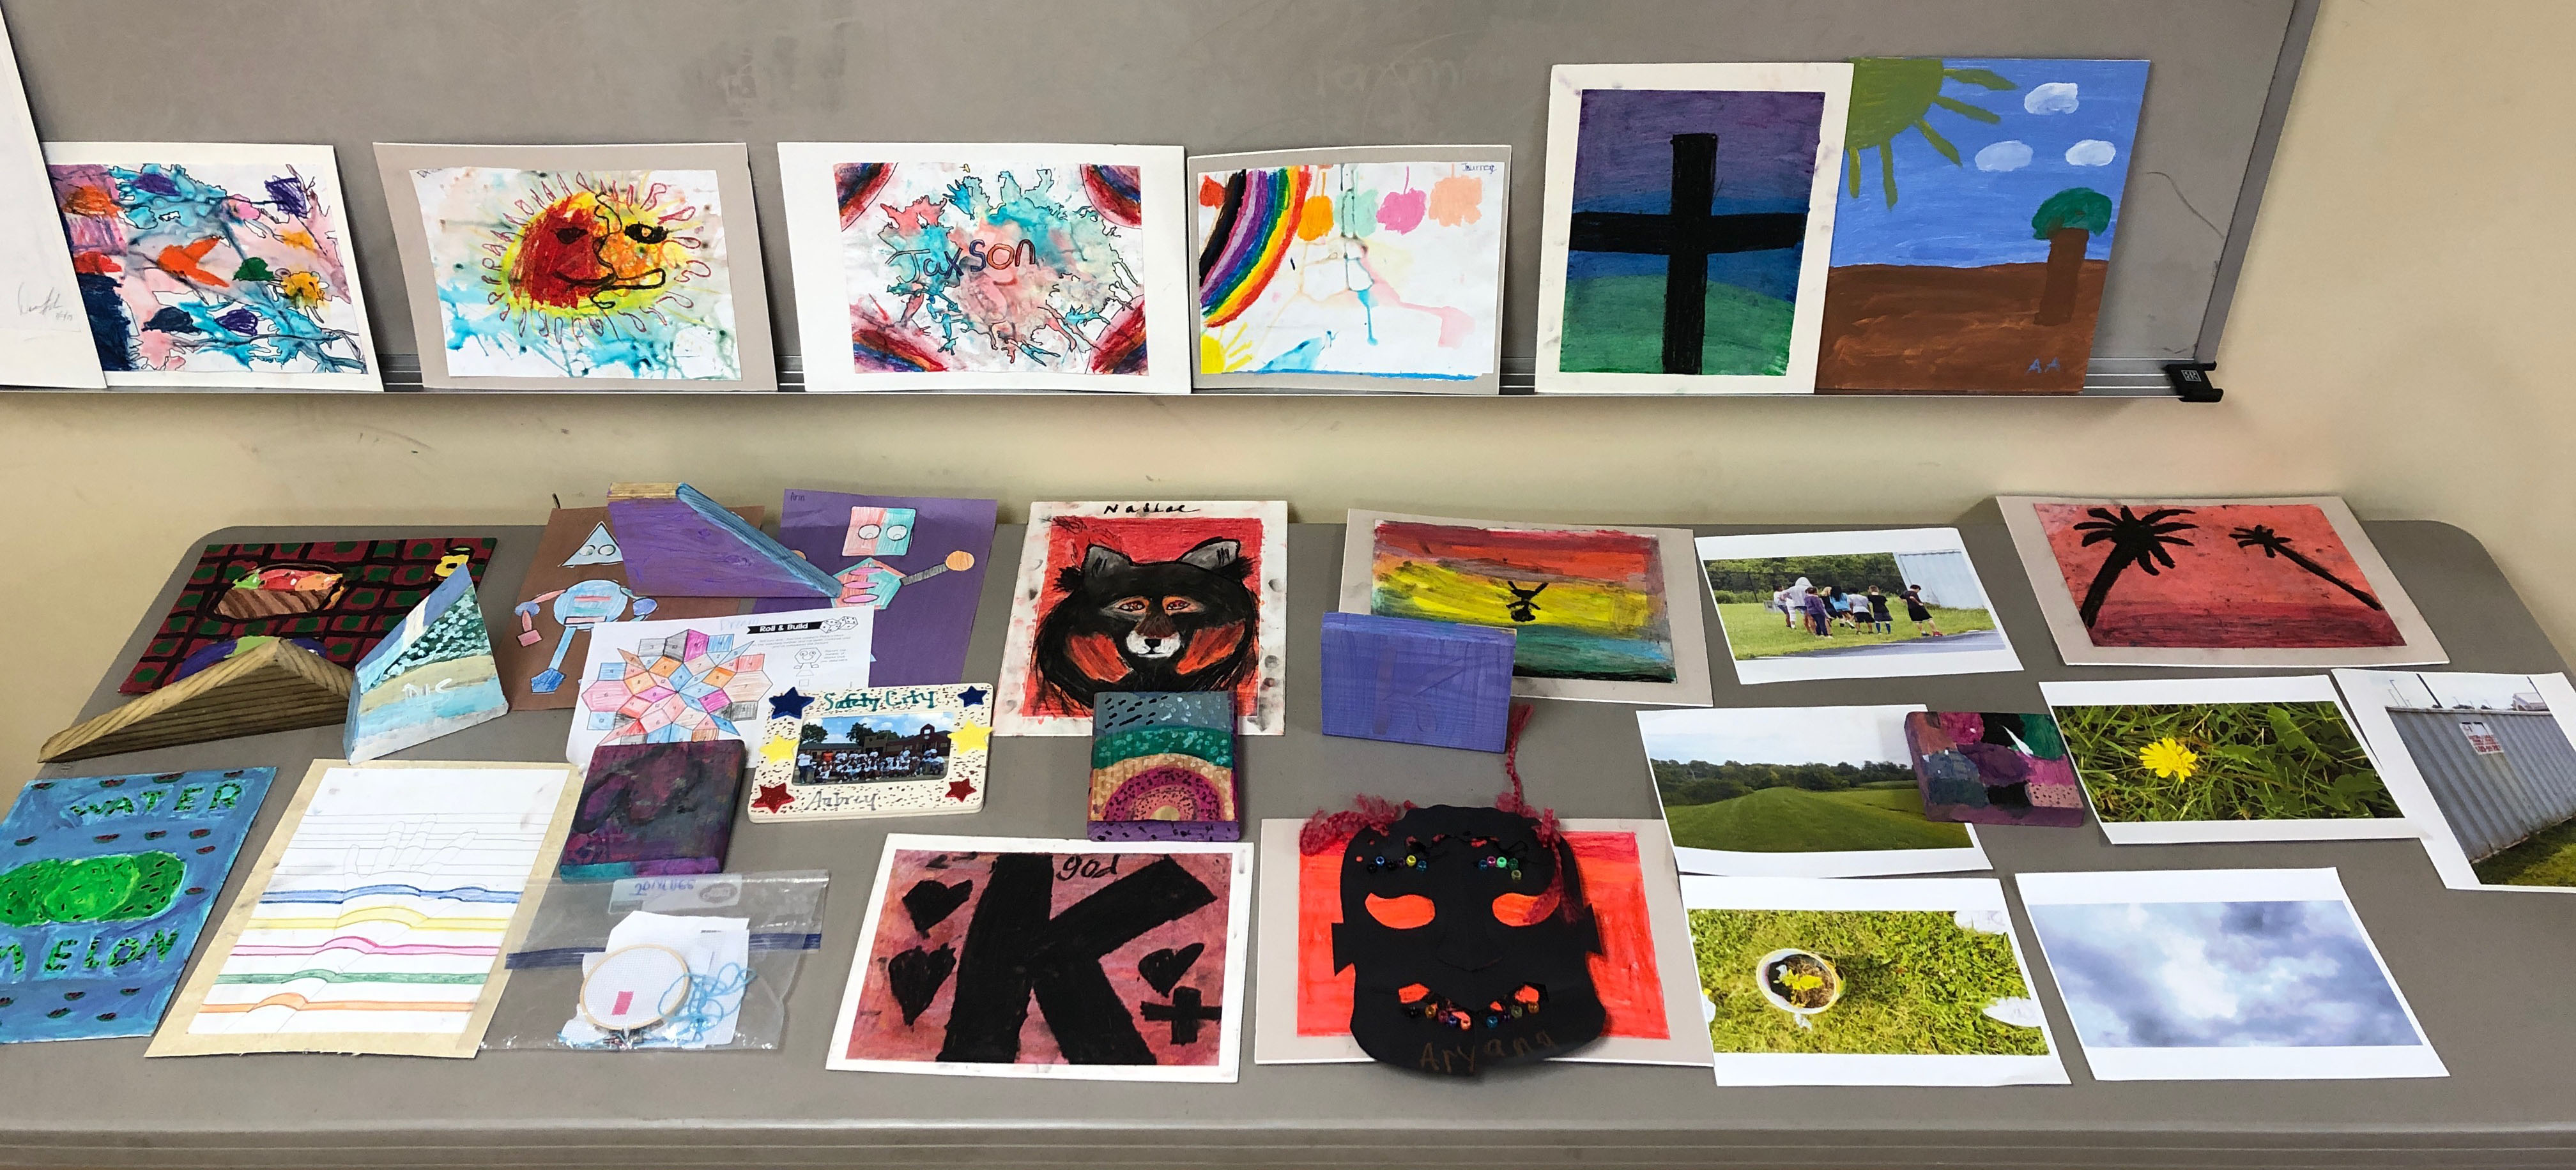 A sample of artwork created by students in the Summer Enrichment Program at Consolidated Baptist Church in Lexington